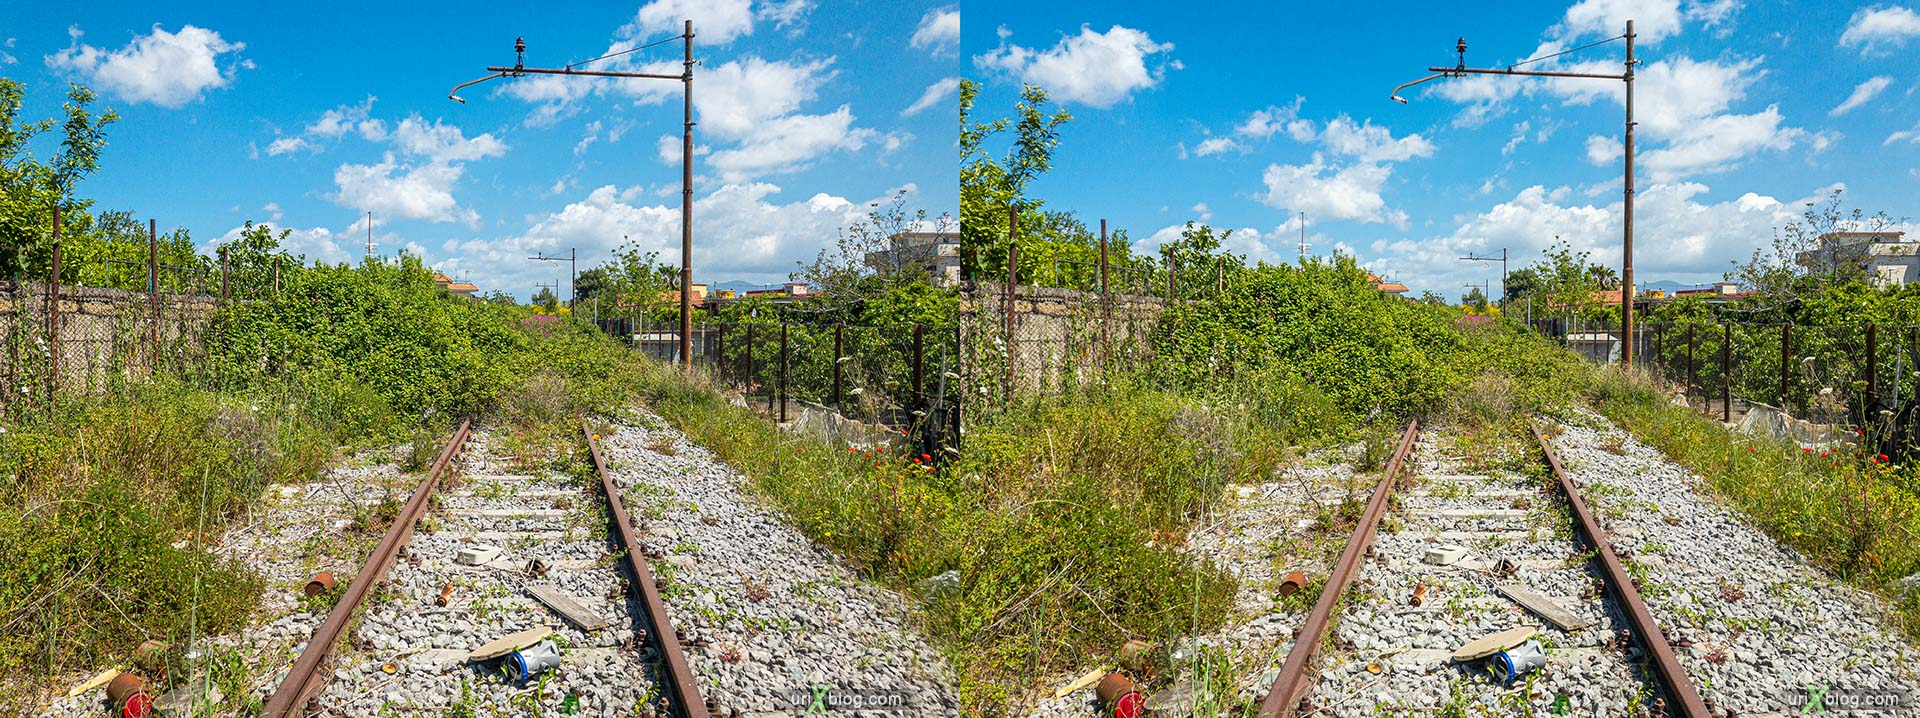 railway, Torre Annunziata, Italy, 3D, stereo pair, cross-eyed, crossview, cross view stereo pair, stereoscopic